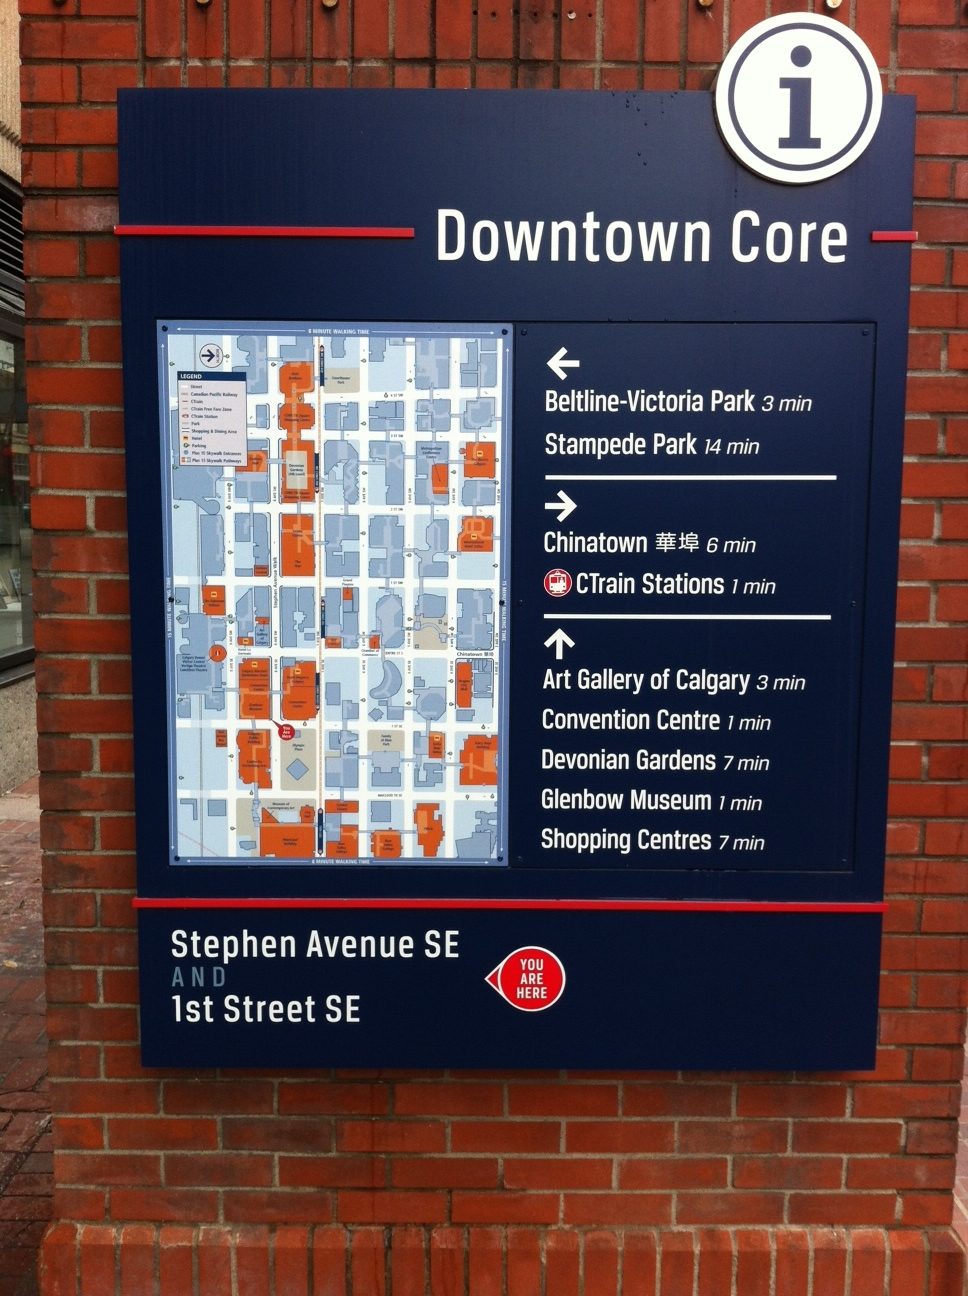 Many downtowns like Calgary are creating comprehensive wayfinding maps to help pedestrians find what they are looking for.  Note distances are in minutes not distances; this is very helpful to women who often relate more to time than distance.